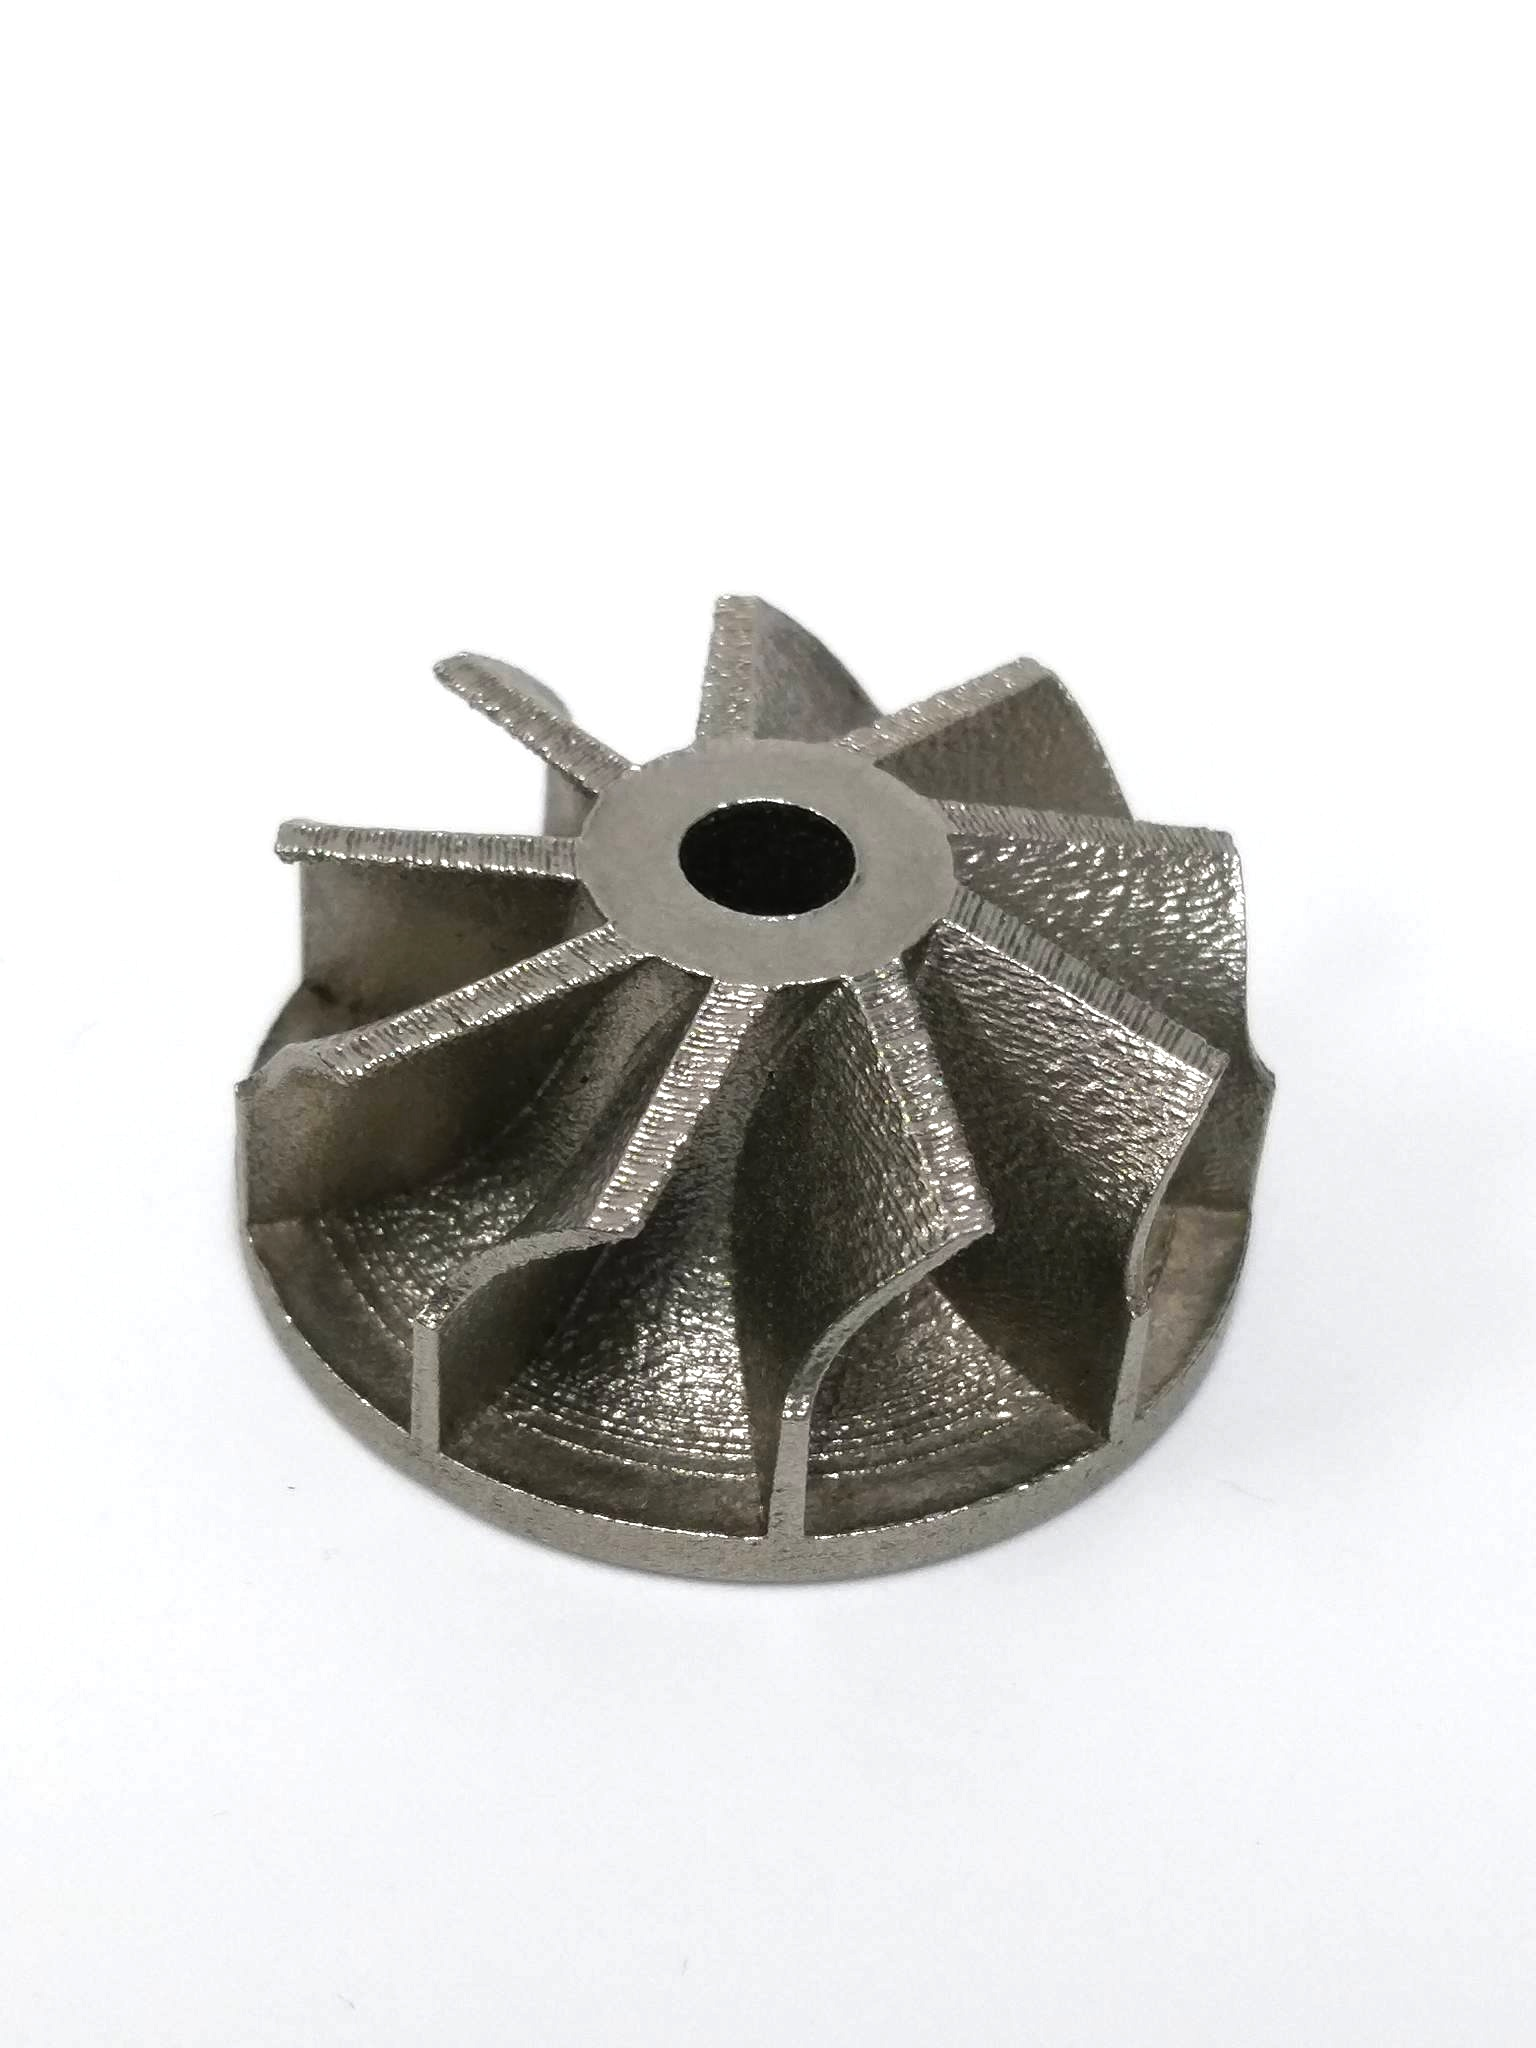 3D printed stainless steel fan made with DMLS.